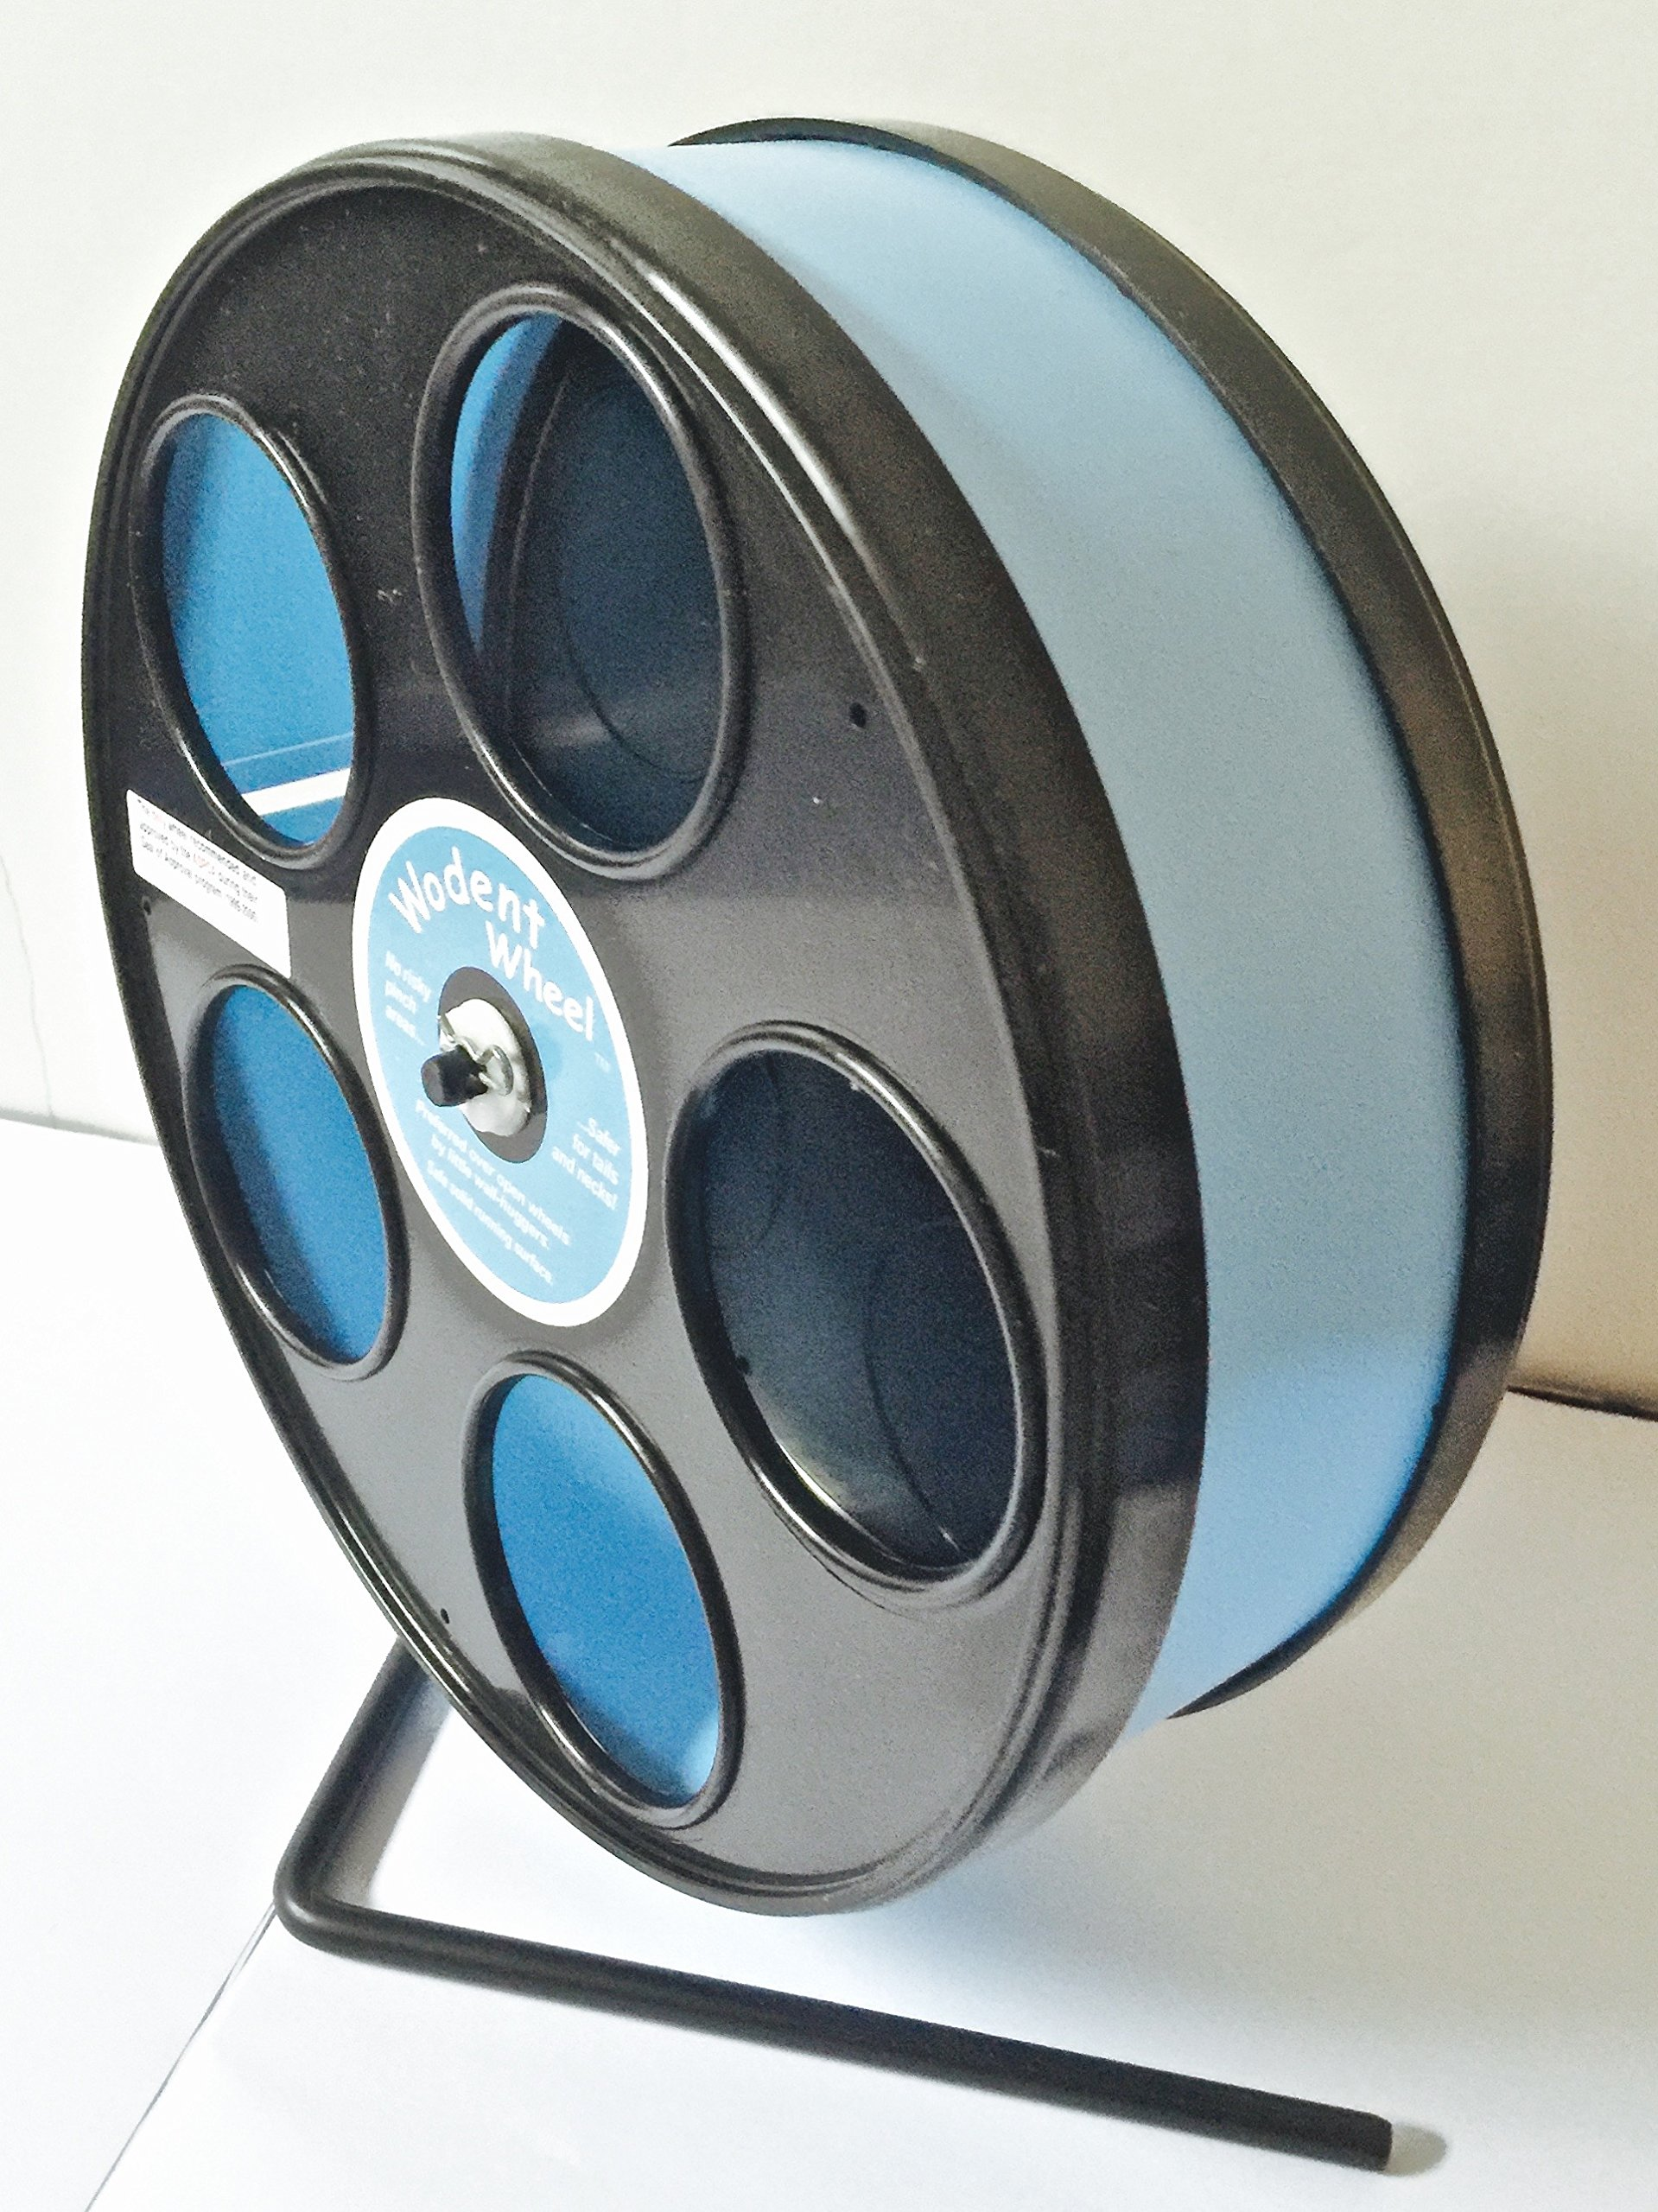 SUGAR GLIDER/HAMSTER 8'' JUNIOR WODENT EXERCISE WHEEL IN LIGHT BLUE WITH BLACK PANELS